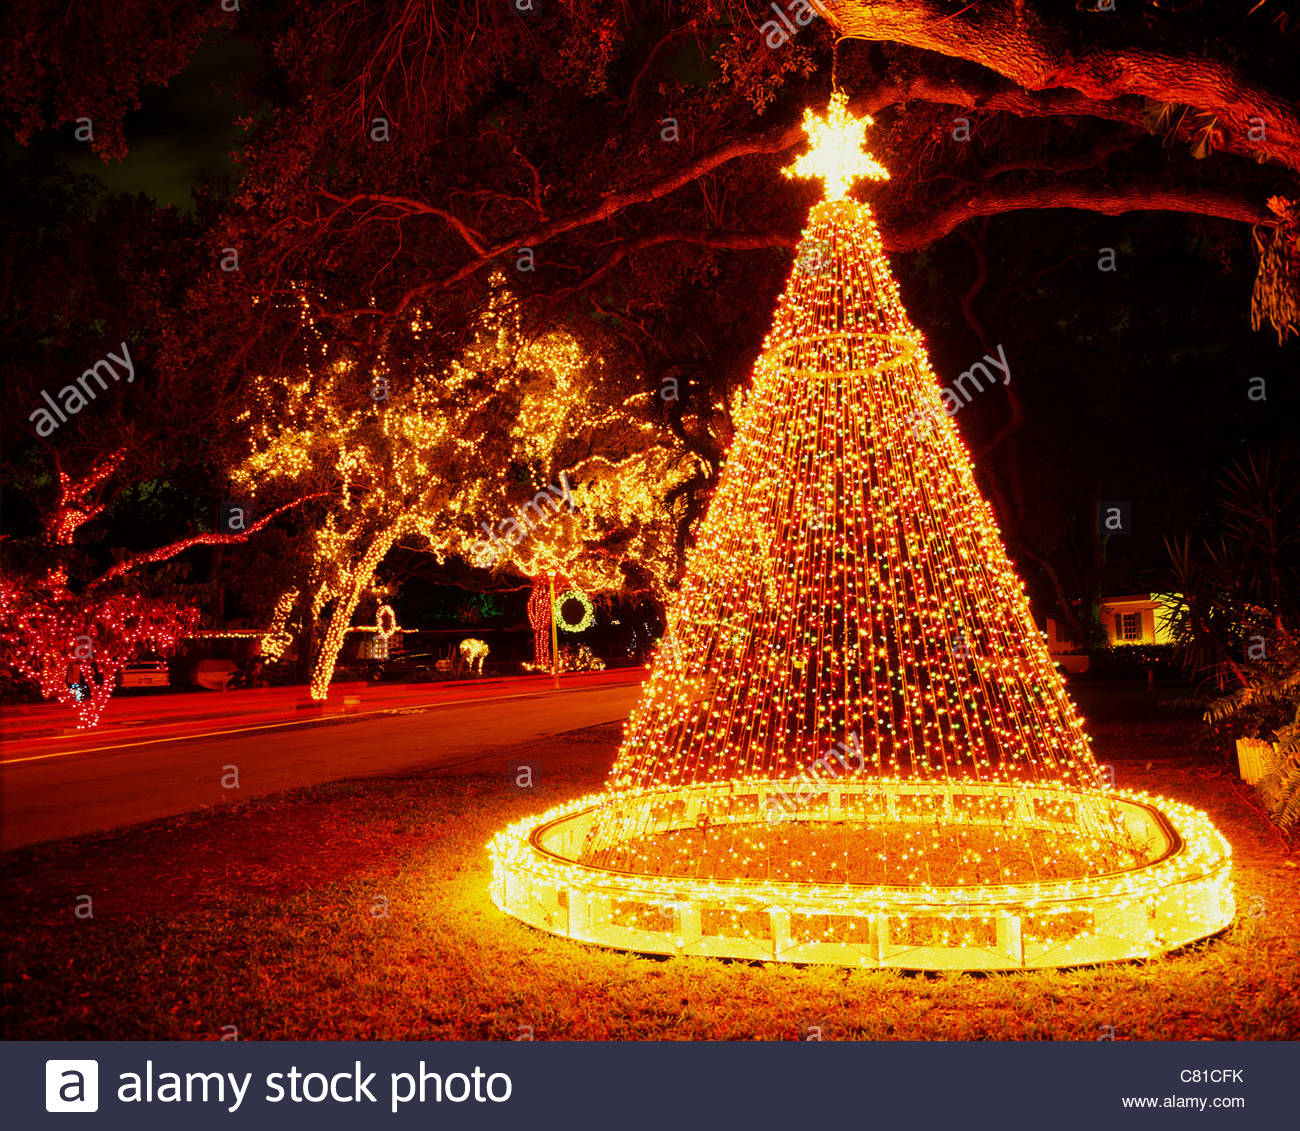 Town Christmas Florida Tree Stock Photos & Town Christmas